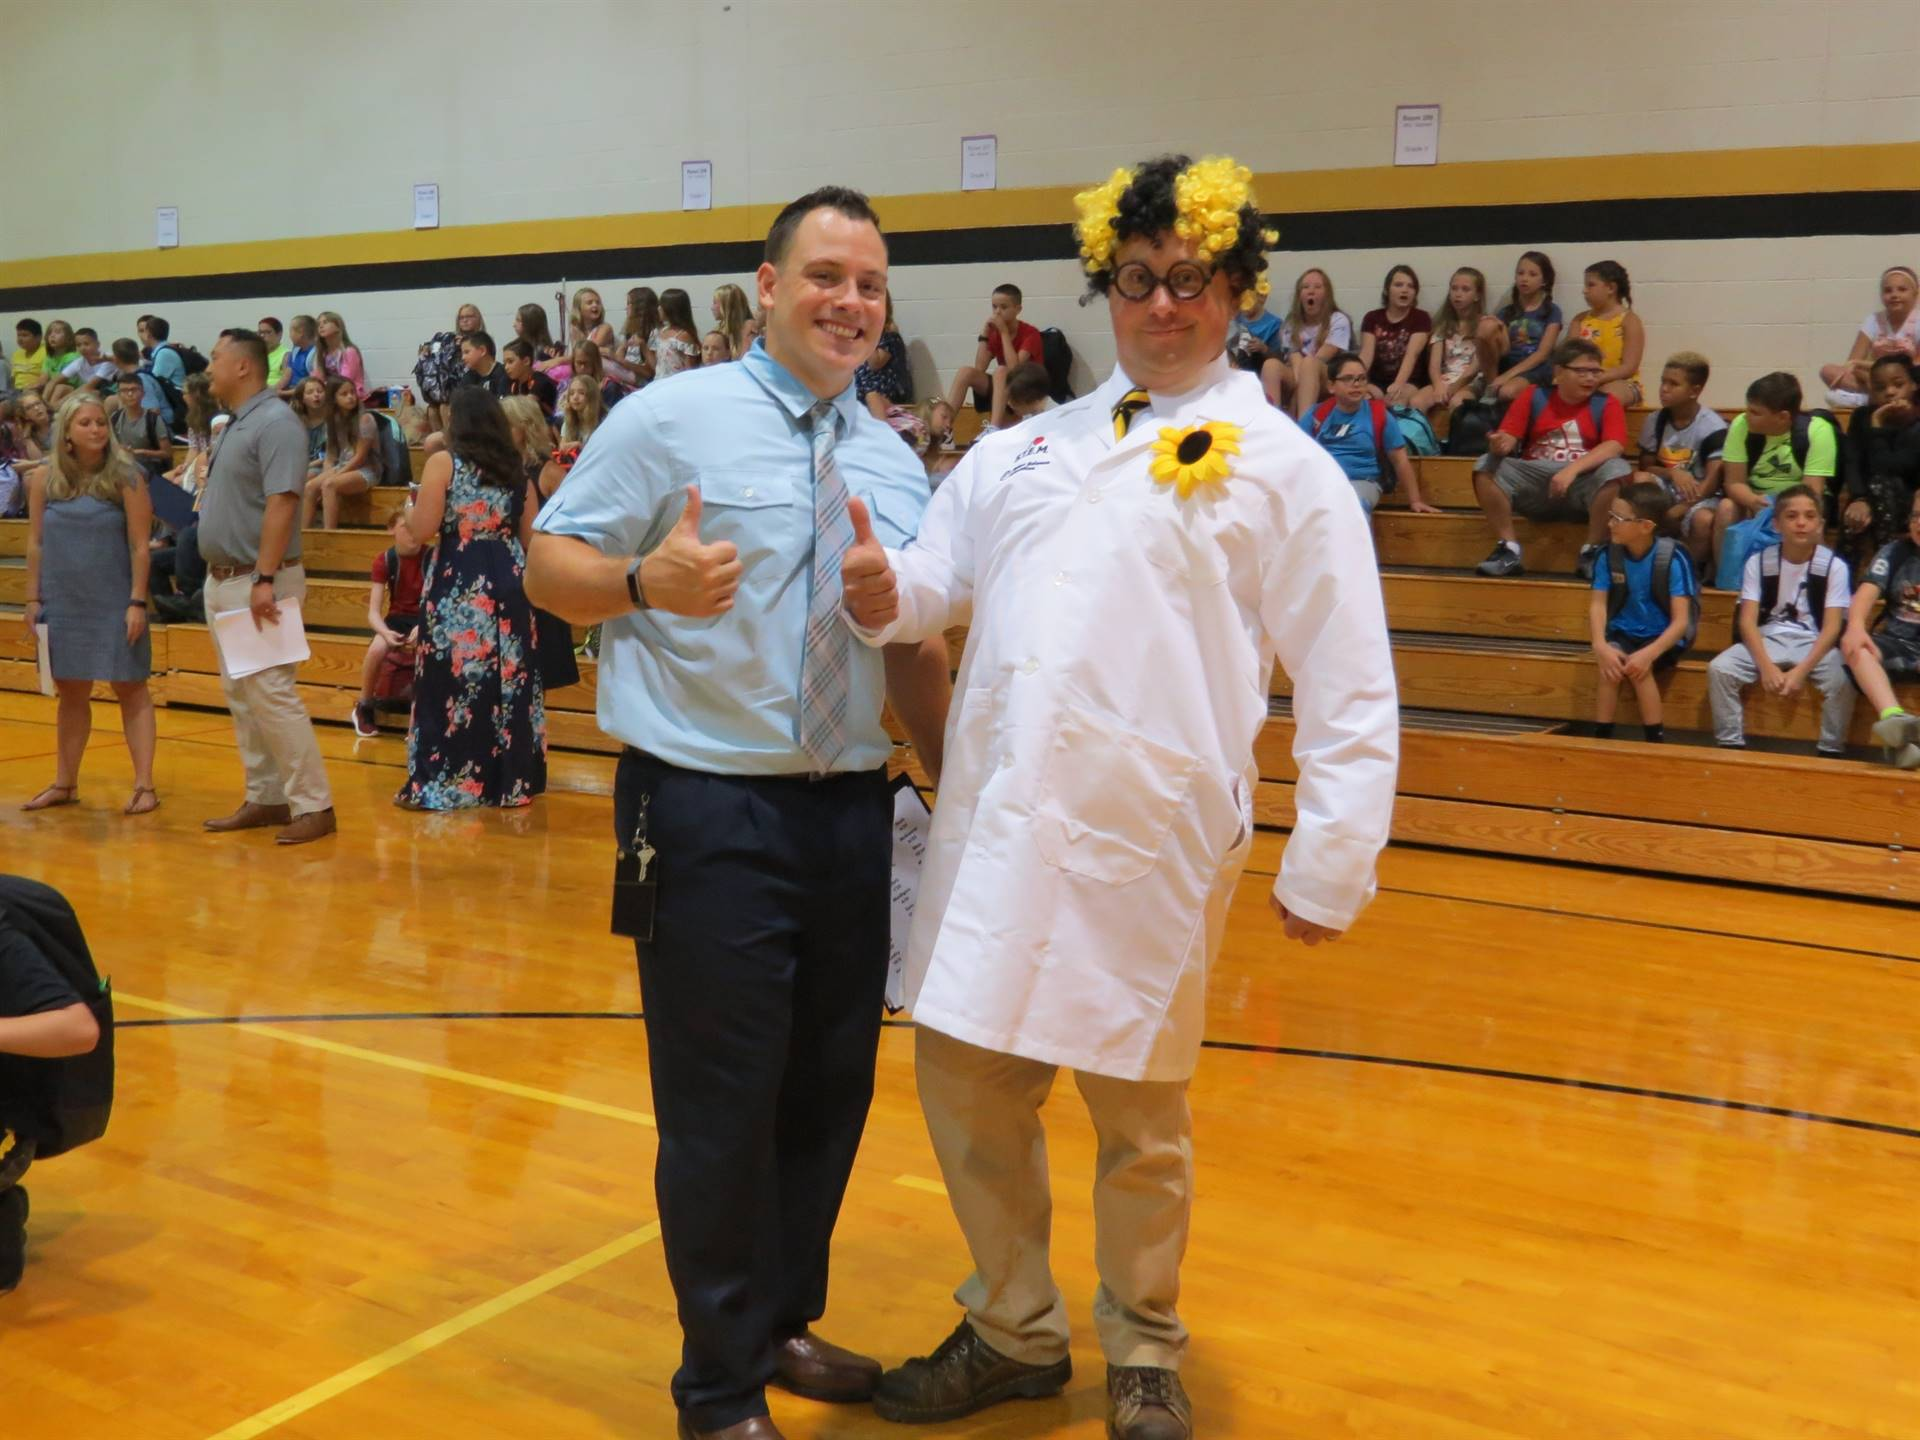 Mr. Chropka standing with Mr. Owen in his lab coat and black and gold wig